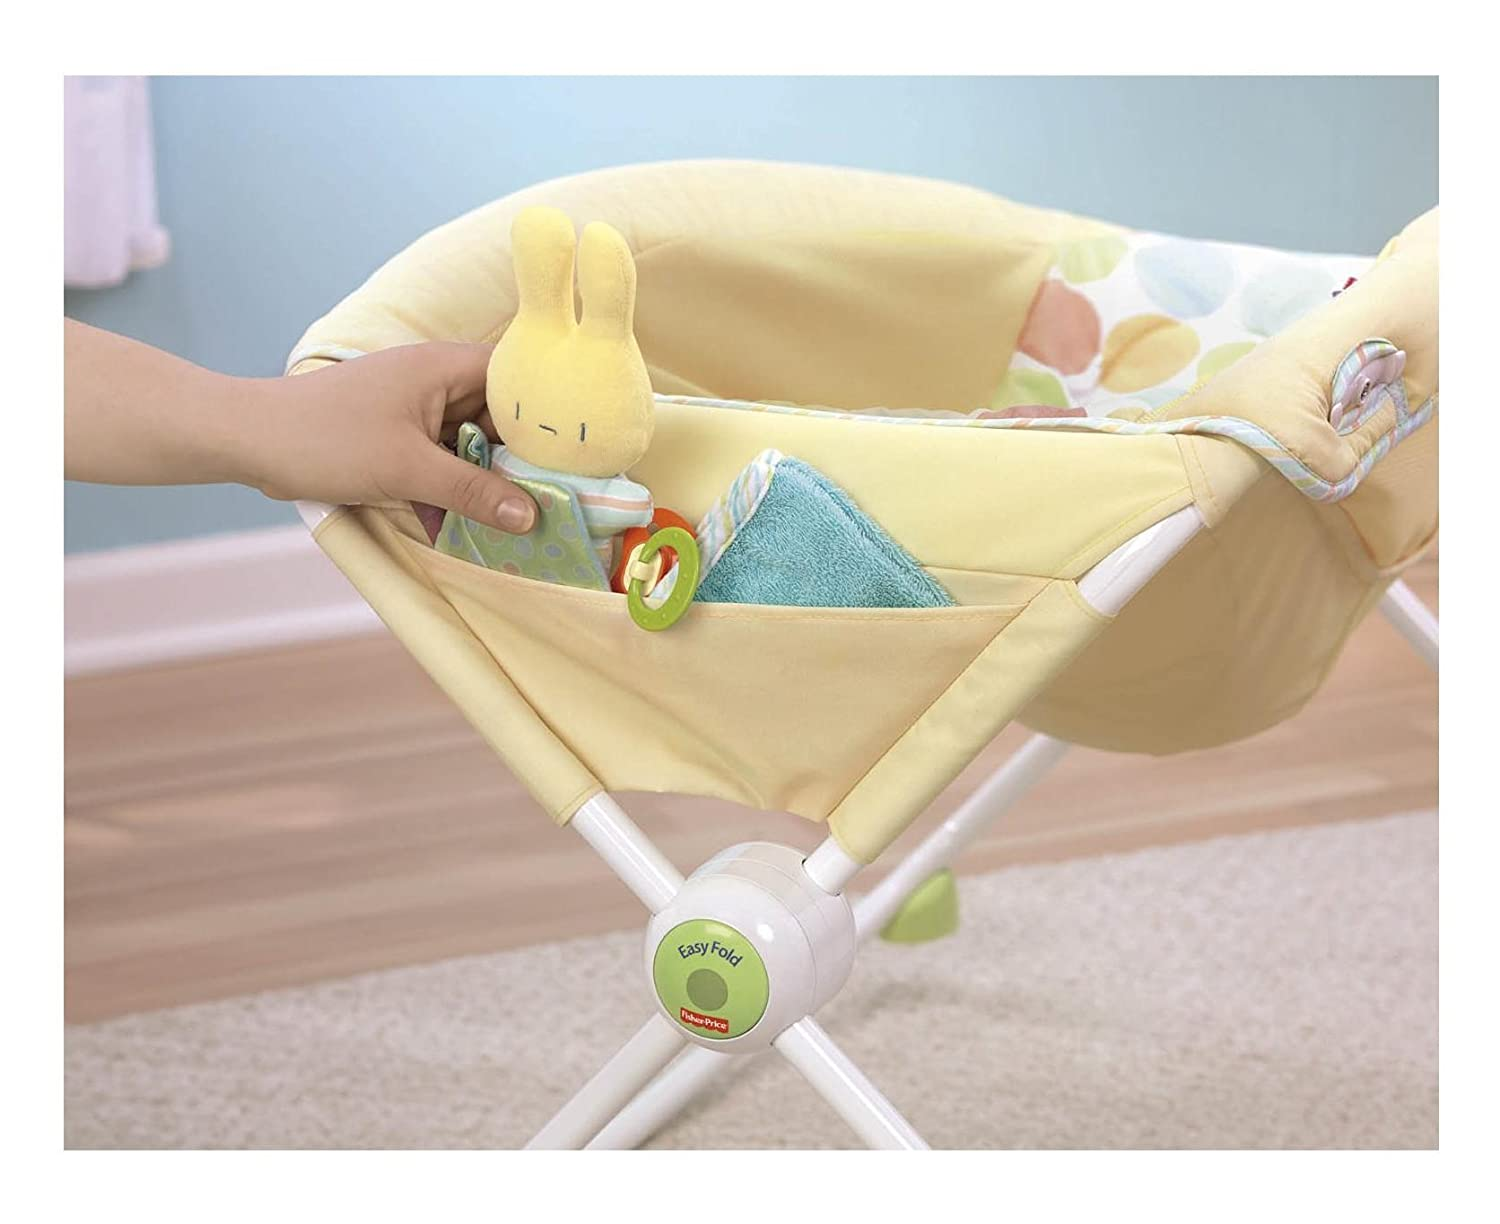 Baby cribs little rock ar - Amazon Com Fisher Price Newborn Rock N Play Sleeper Yellow Discontinued By Manufacturer Baby